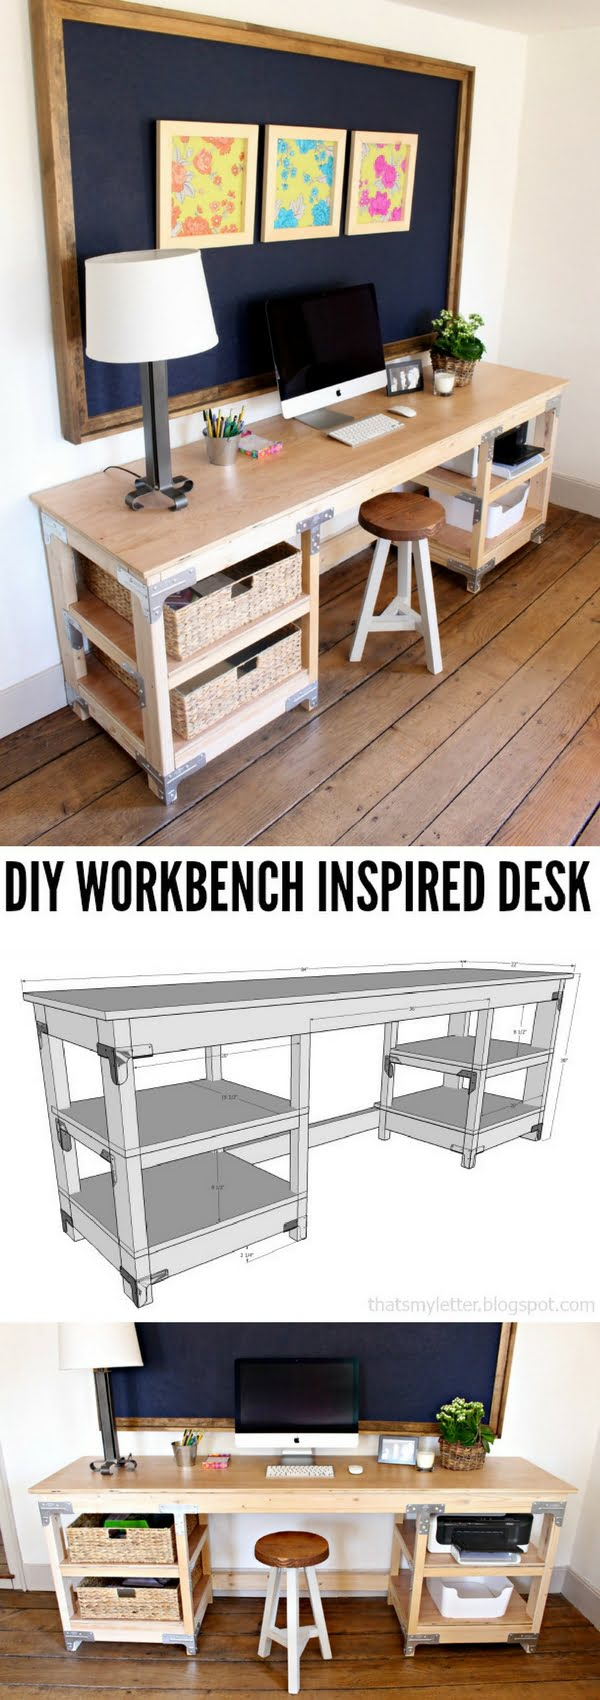 Check out the tutorial how to build a DIY workbench desk